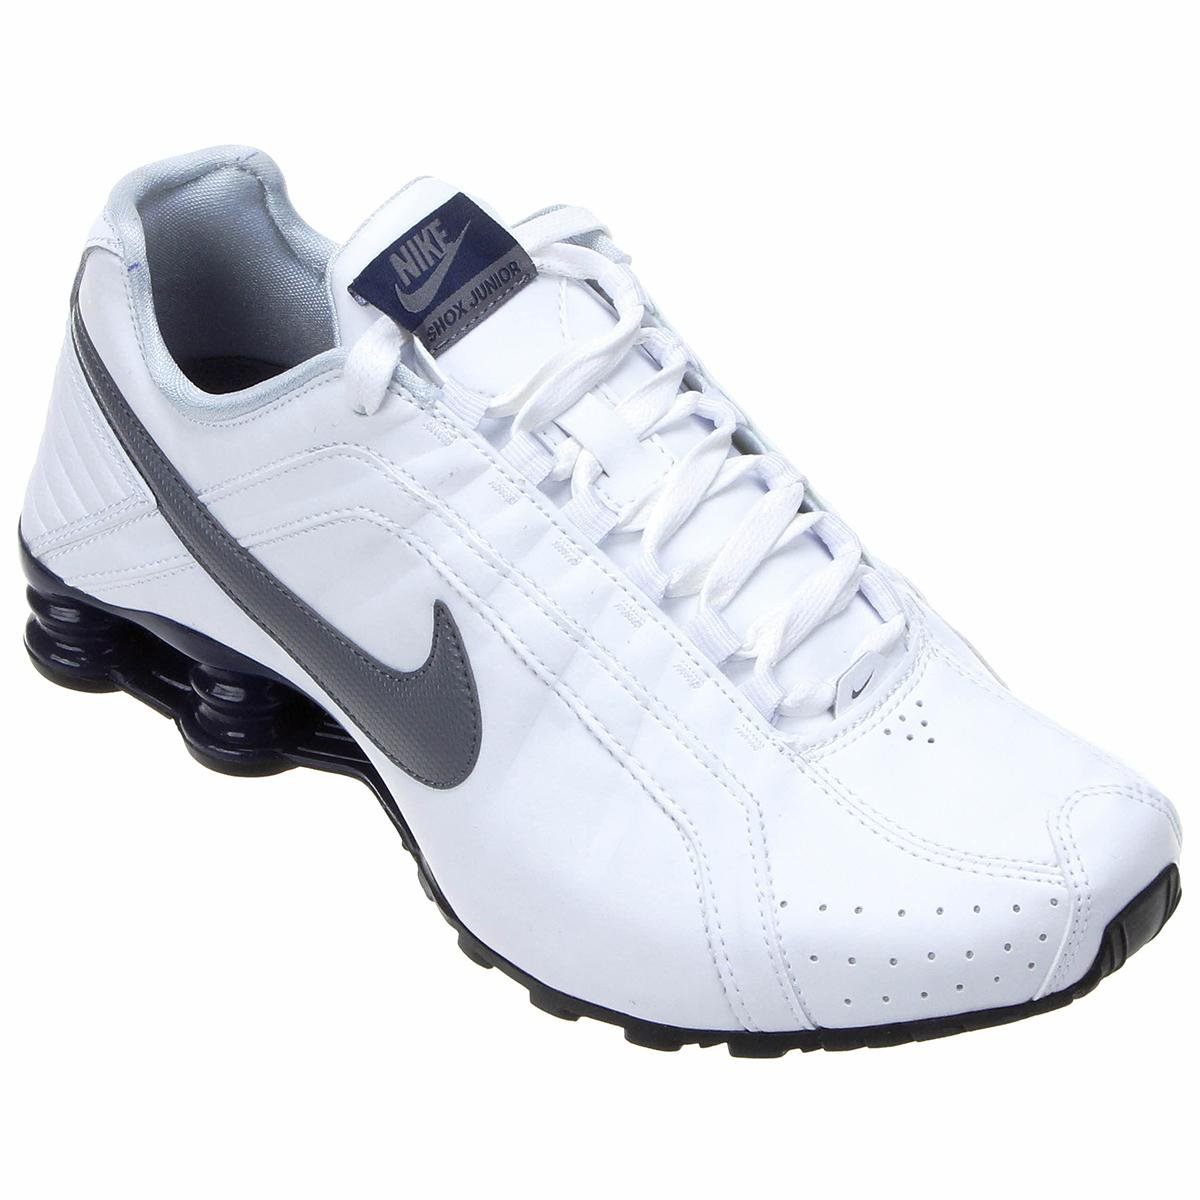 best website d8863 8903a ... Tênis Nike Shox Junior - Branco e Azul Petróleo ...